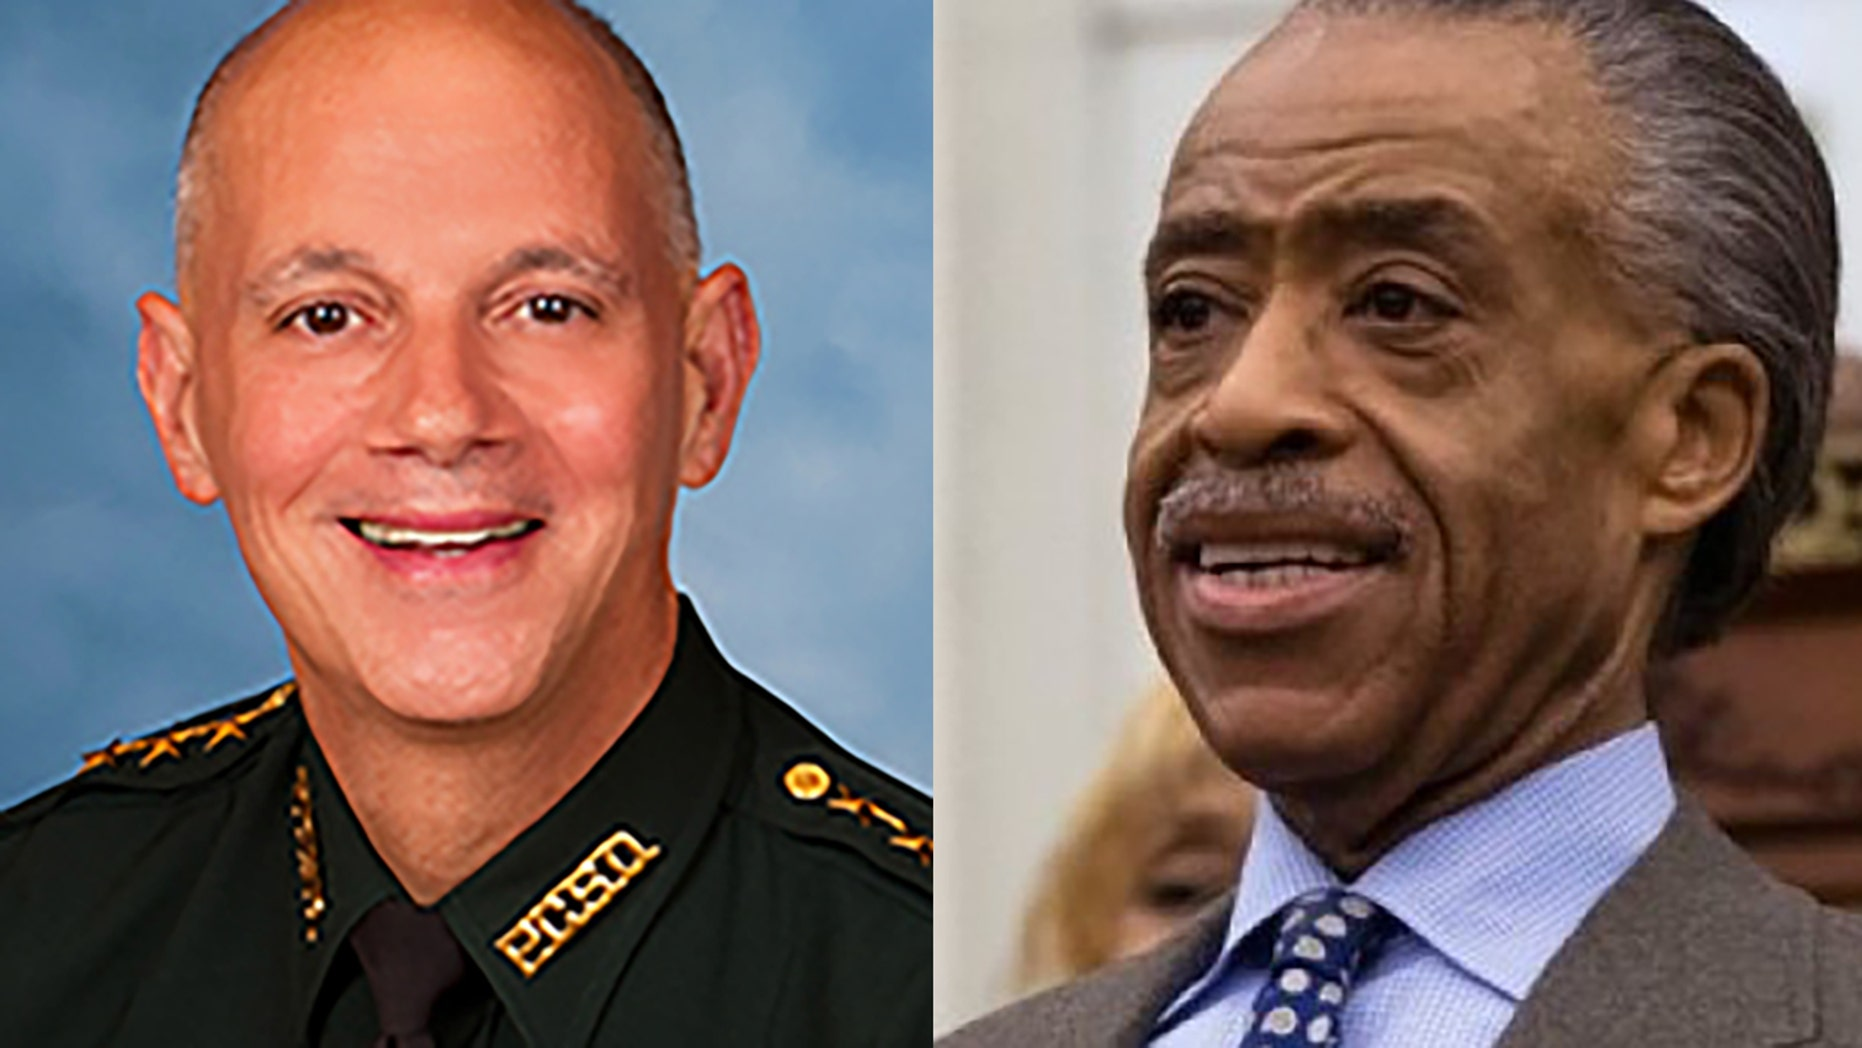 Pinellas County Sheriff Bob Gualtieri had some words for the Rev. Al Sharpton.